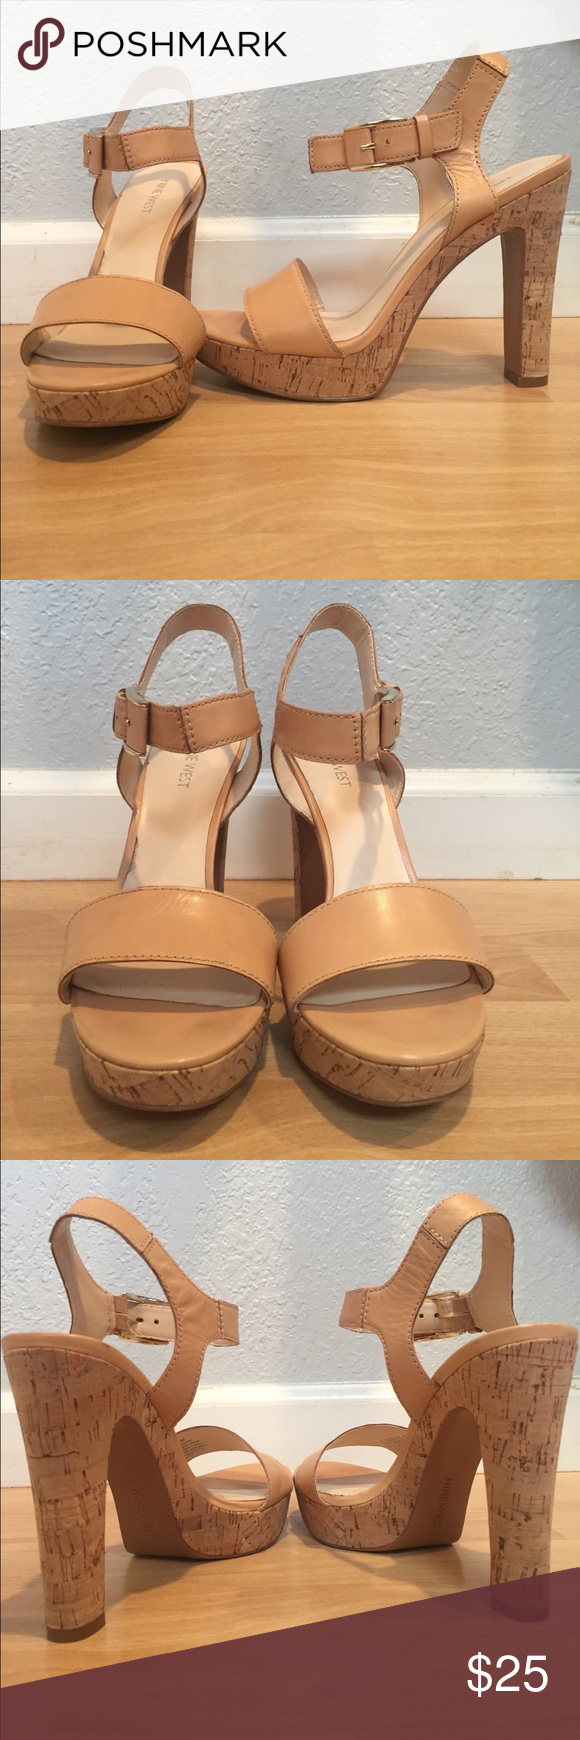 Leather Platforms Sexy summer platforms. 5 inch heel with 1 1/4 inch platform. Surprisingly comfortable! Some slight discoloration on the toe straps (pictured). Otherwise EUC. Feel free to make me an offer! Nine West Shoes Platforms